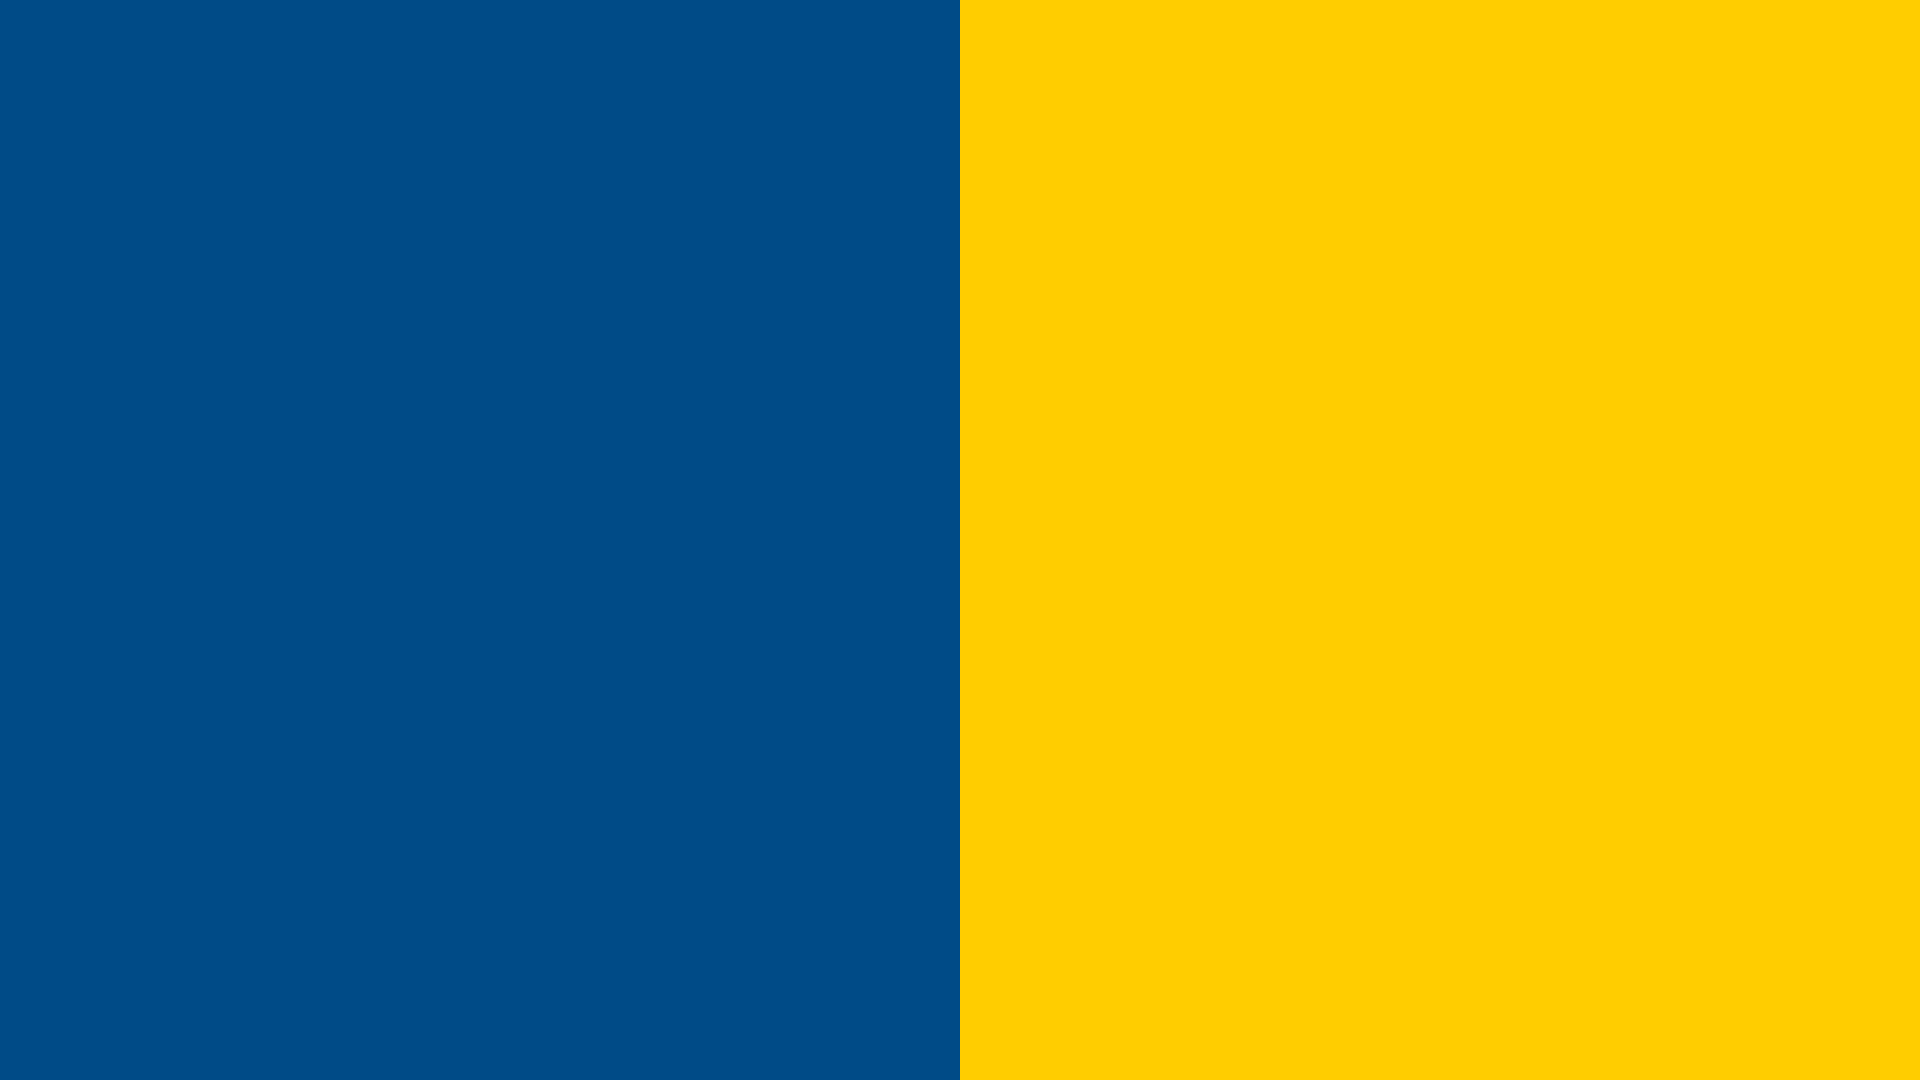 Sweden Flag Color Palette